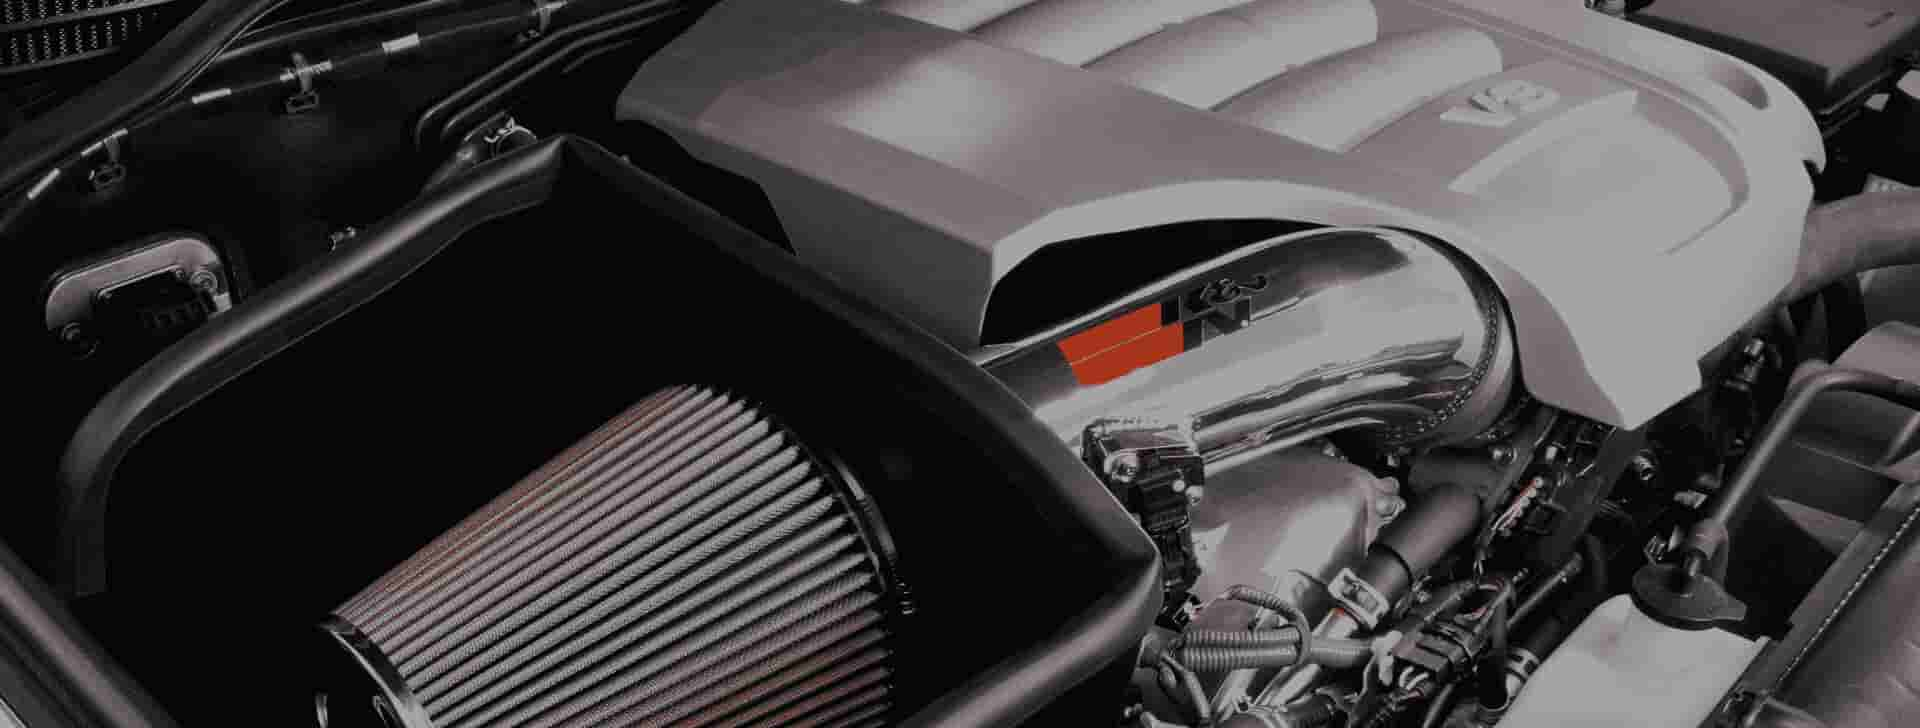 Cold Air Intake Systems Improve Your Vehicle's Performance